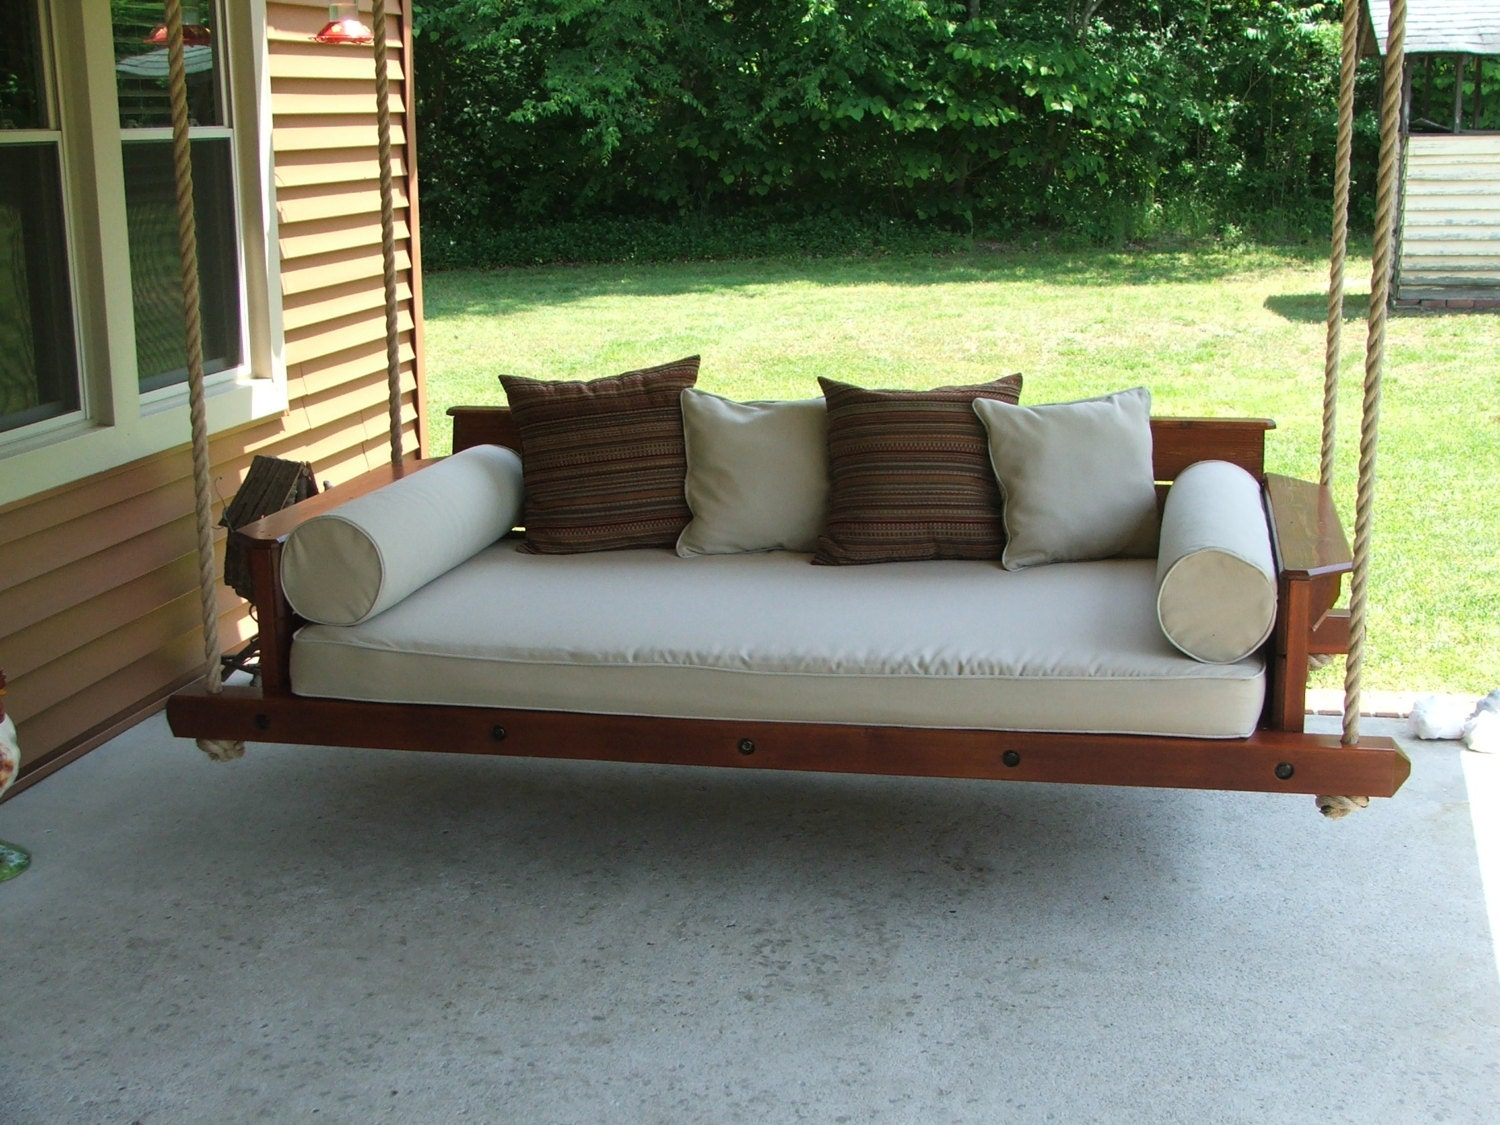 porch swing bed. Black Bedroom Furniture Sets. Home Design Ideas